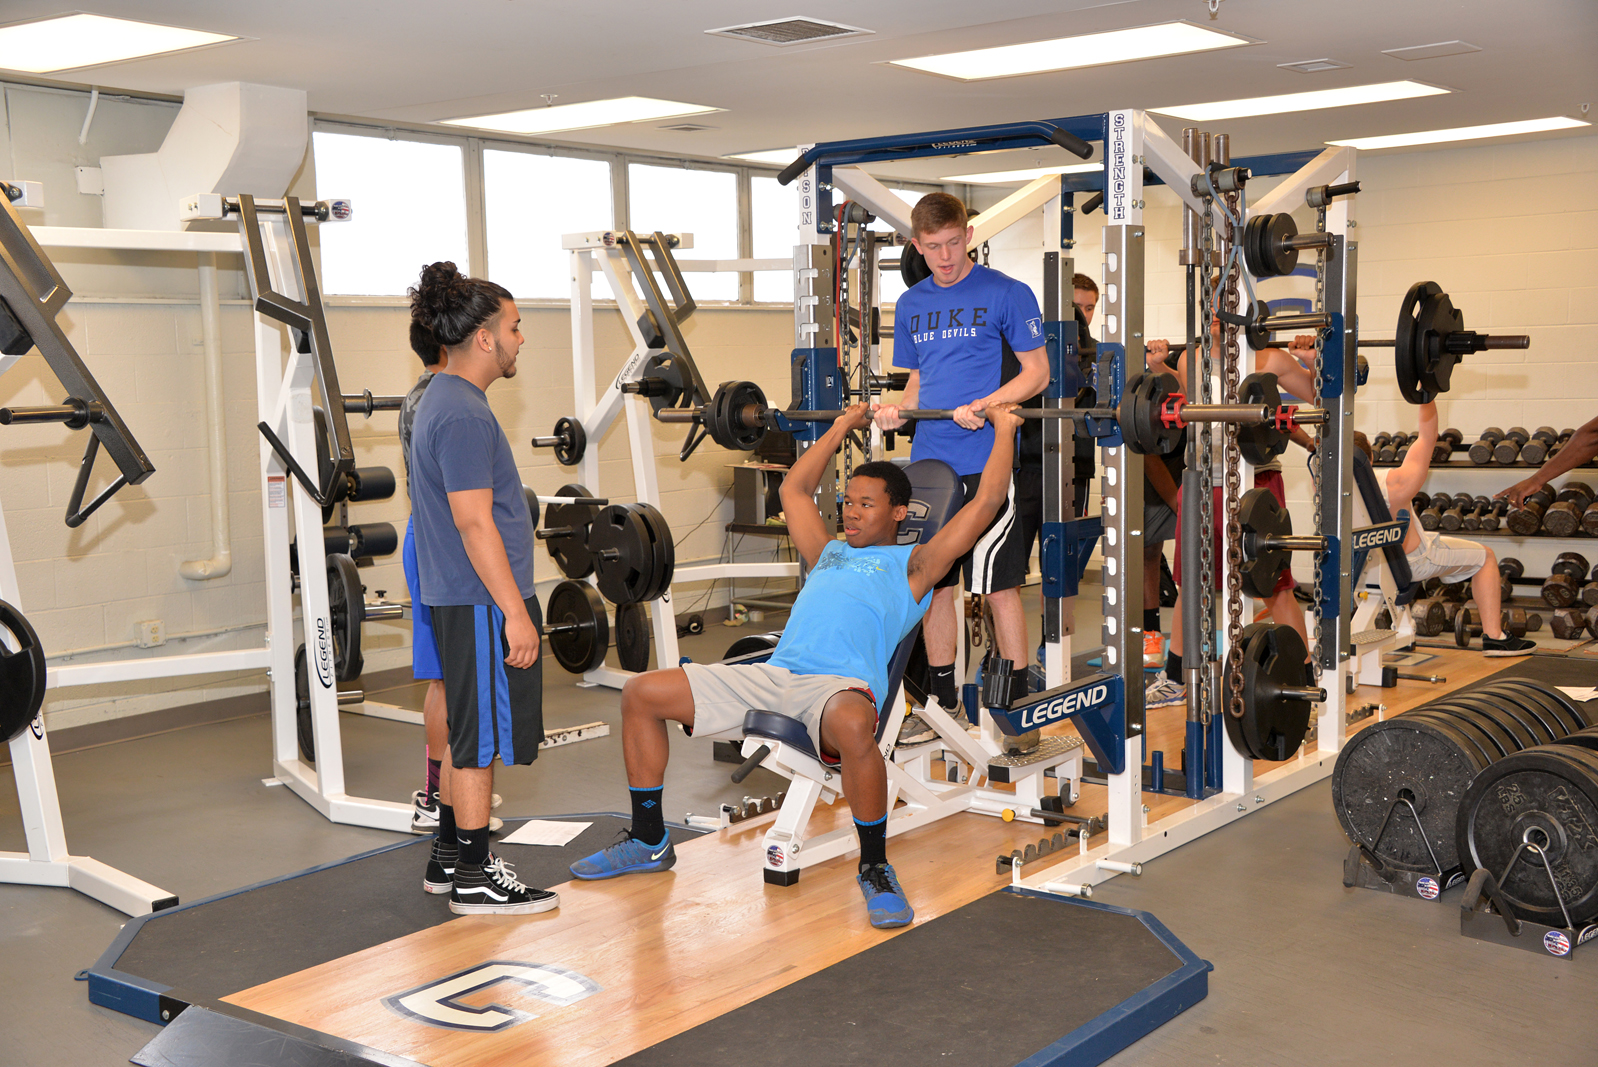 High point central school receives weight room equipment